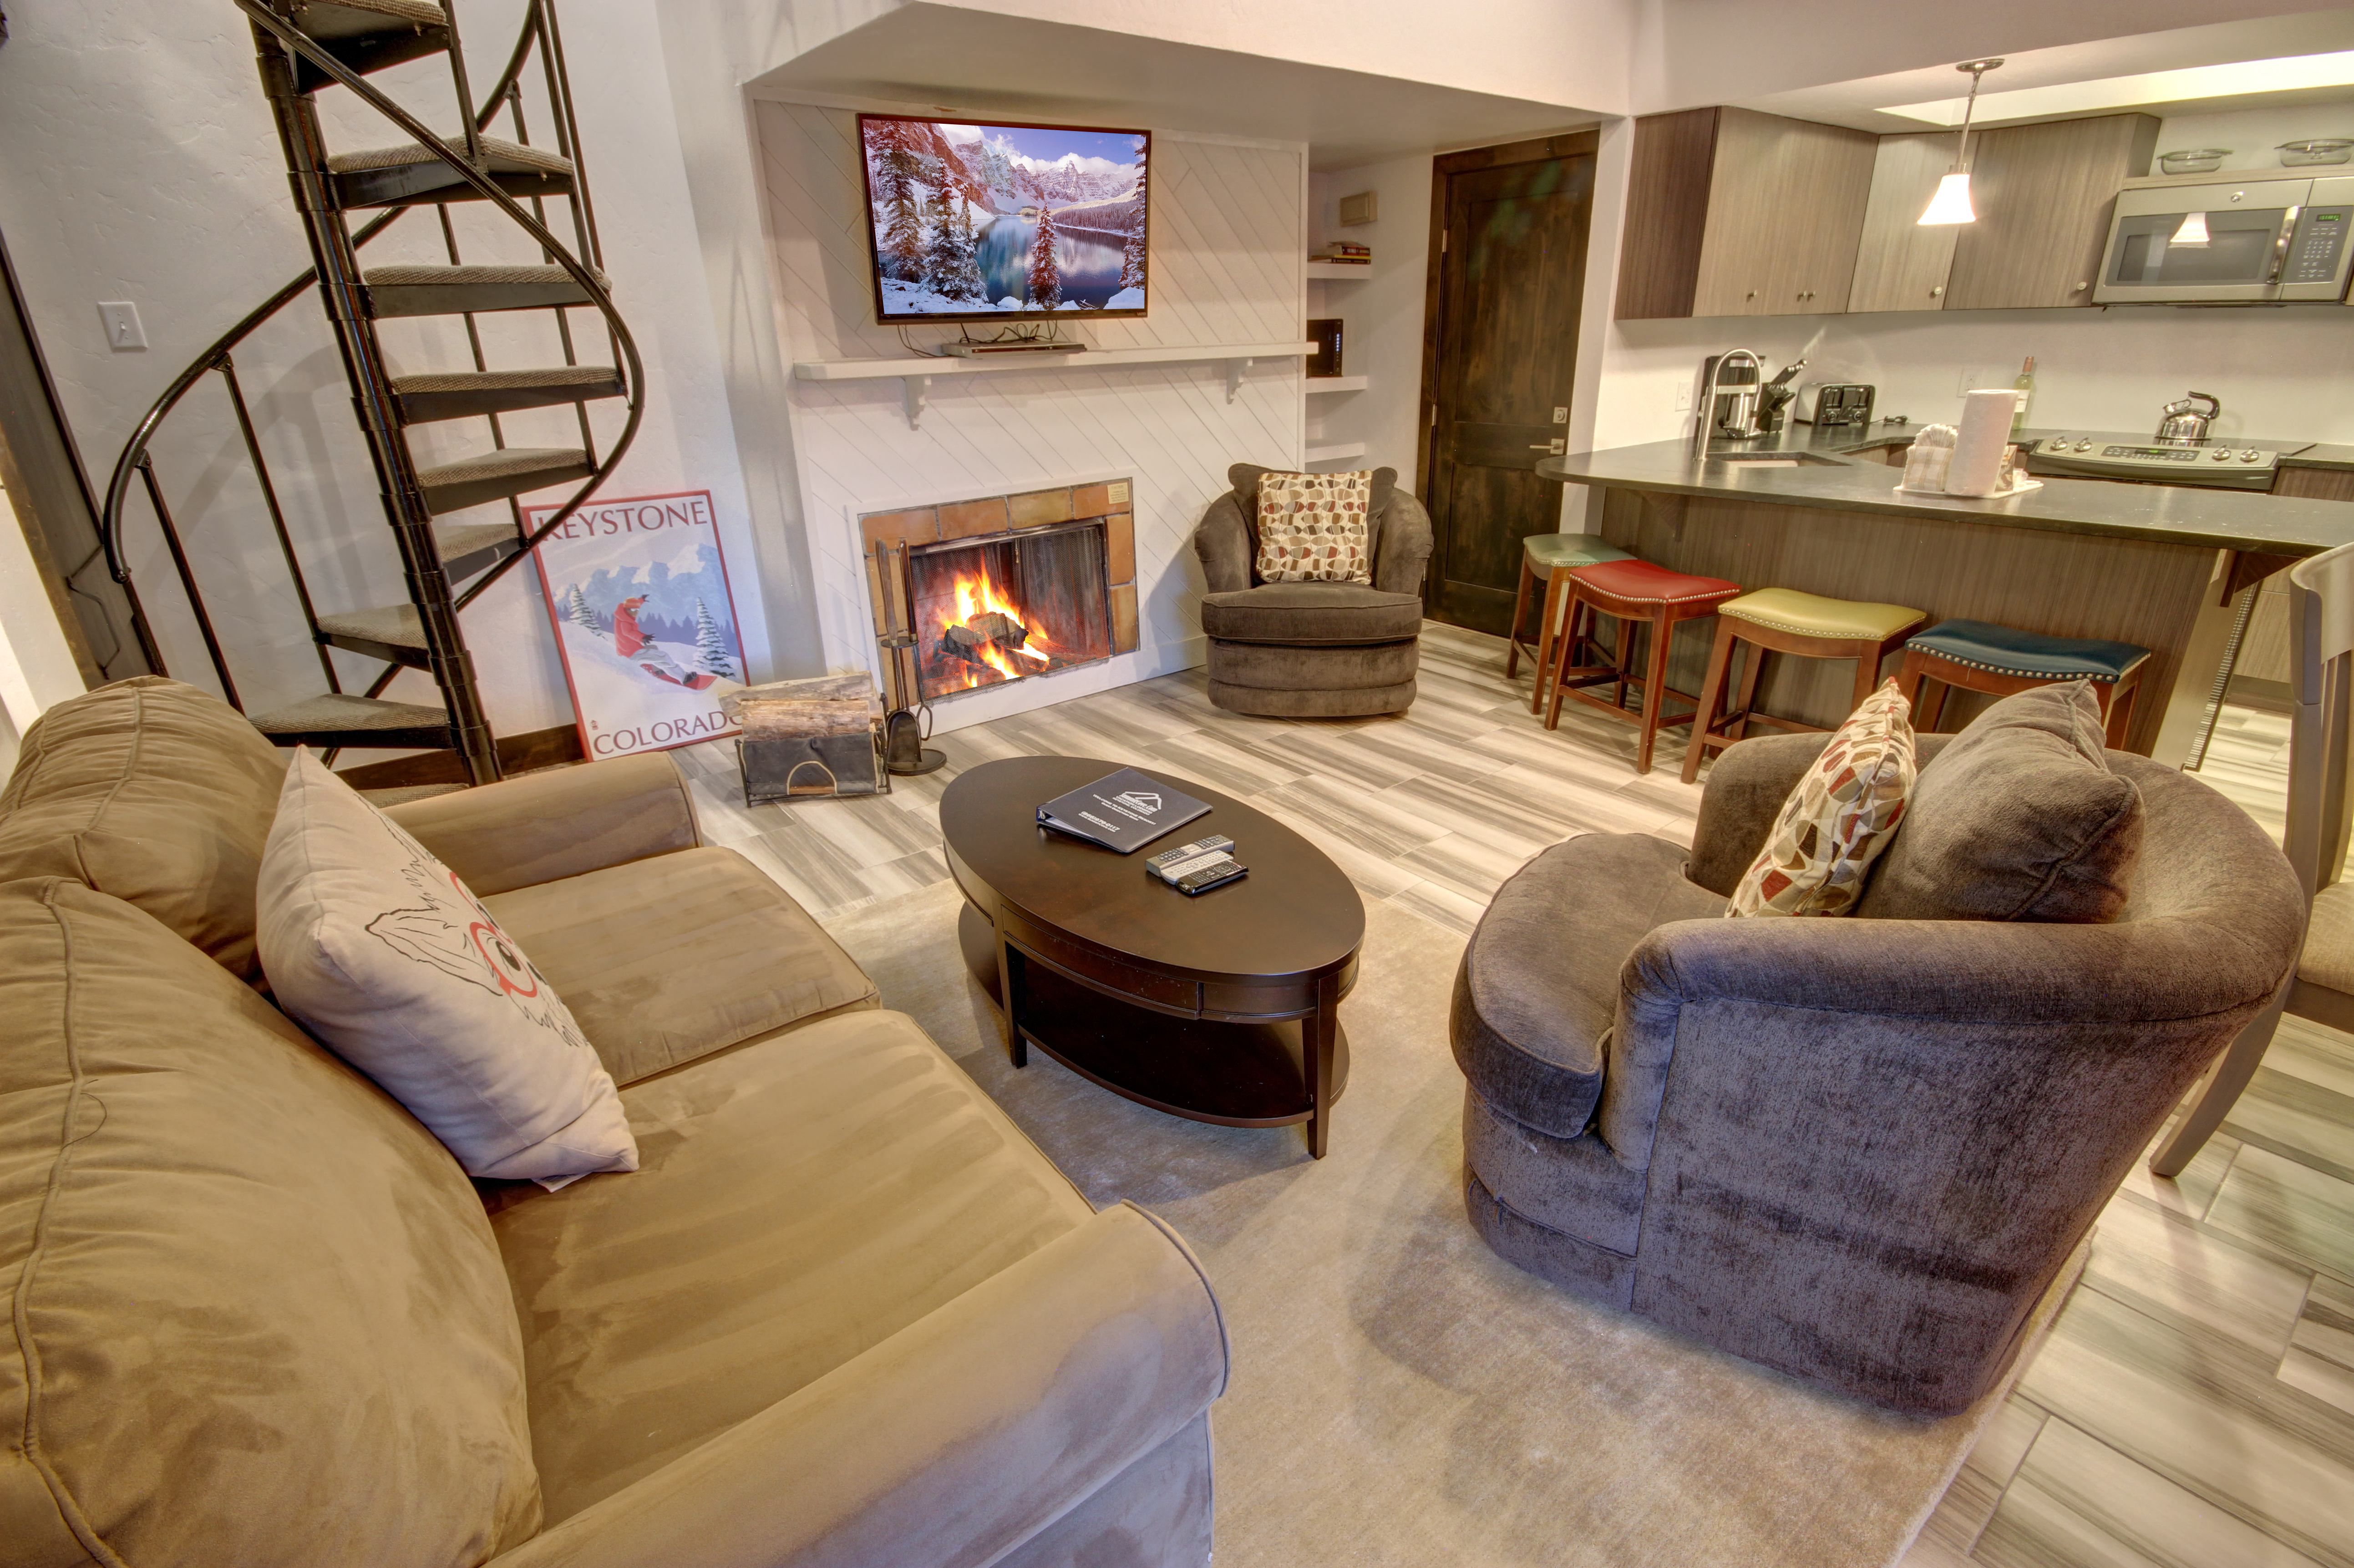 Living space with comfortable couches